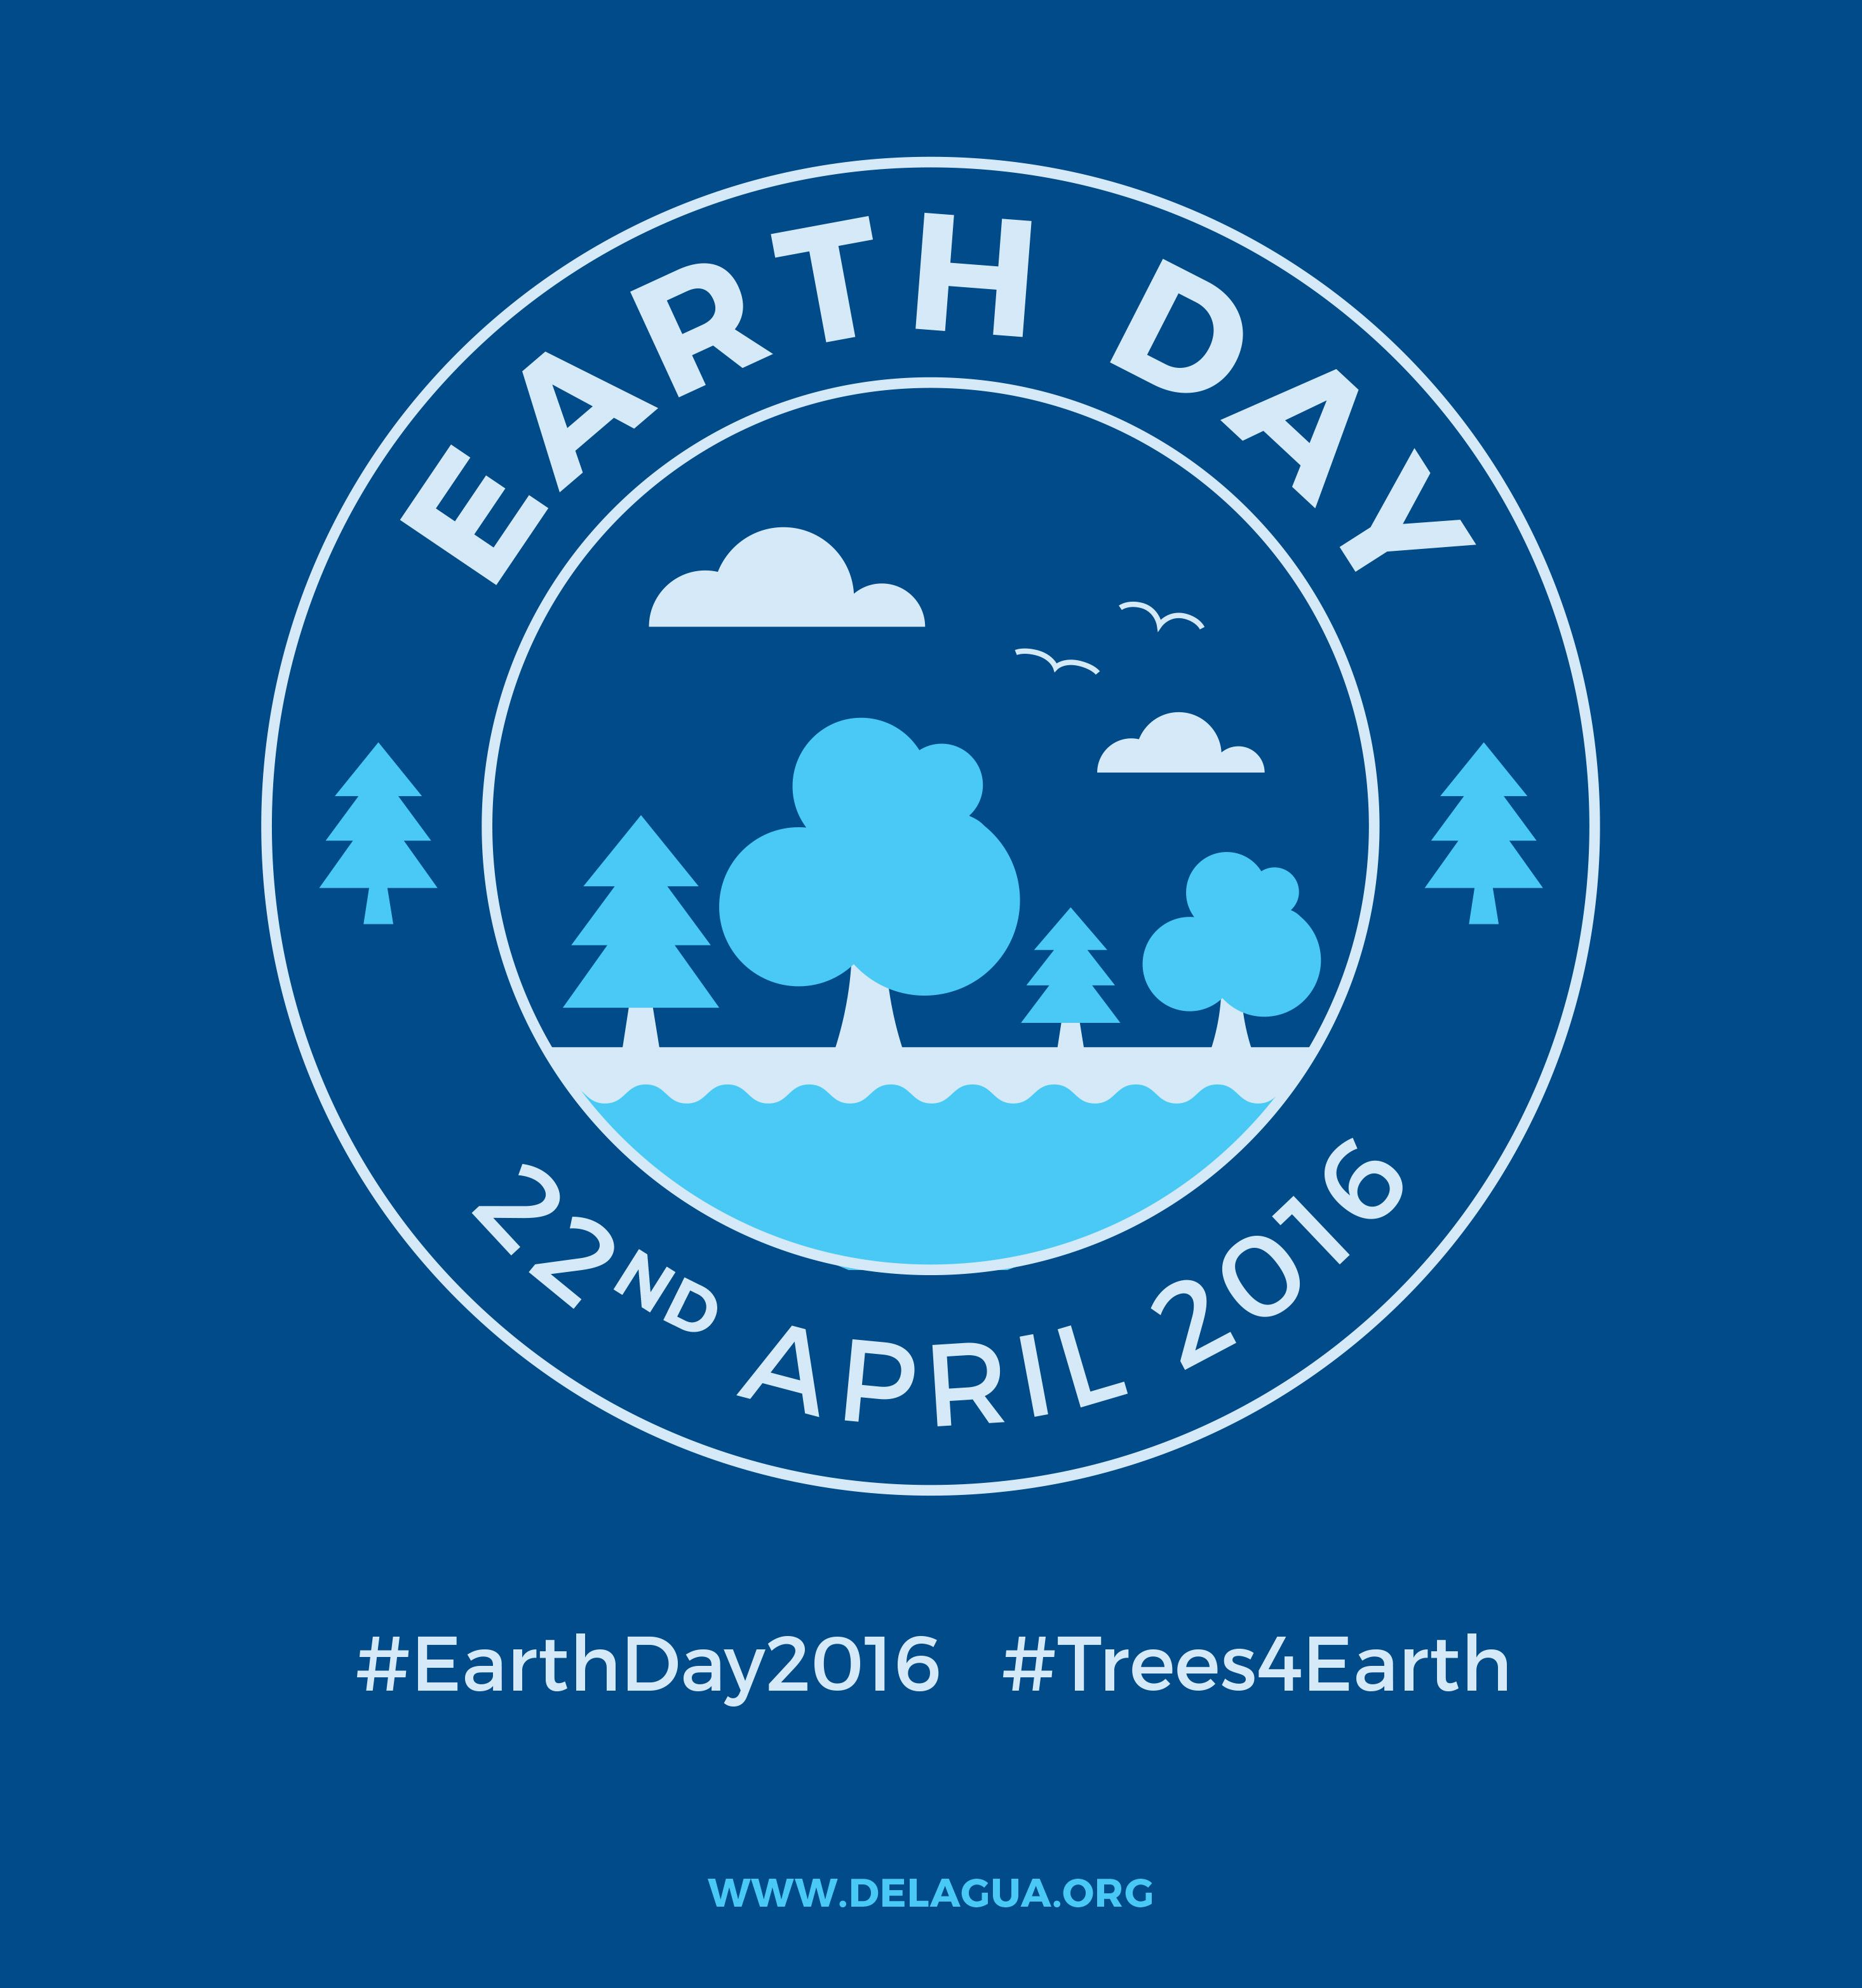 Today marks Earth Day - celebrated each year on the 22nd April. The day aims to encourage people across the world to be more environmentally friendly.